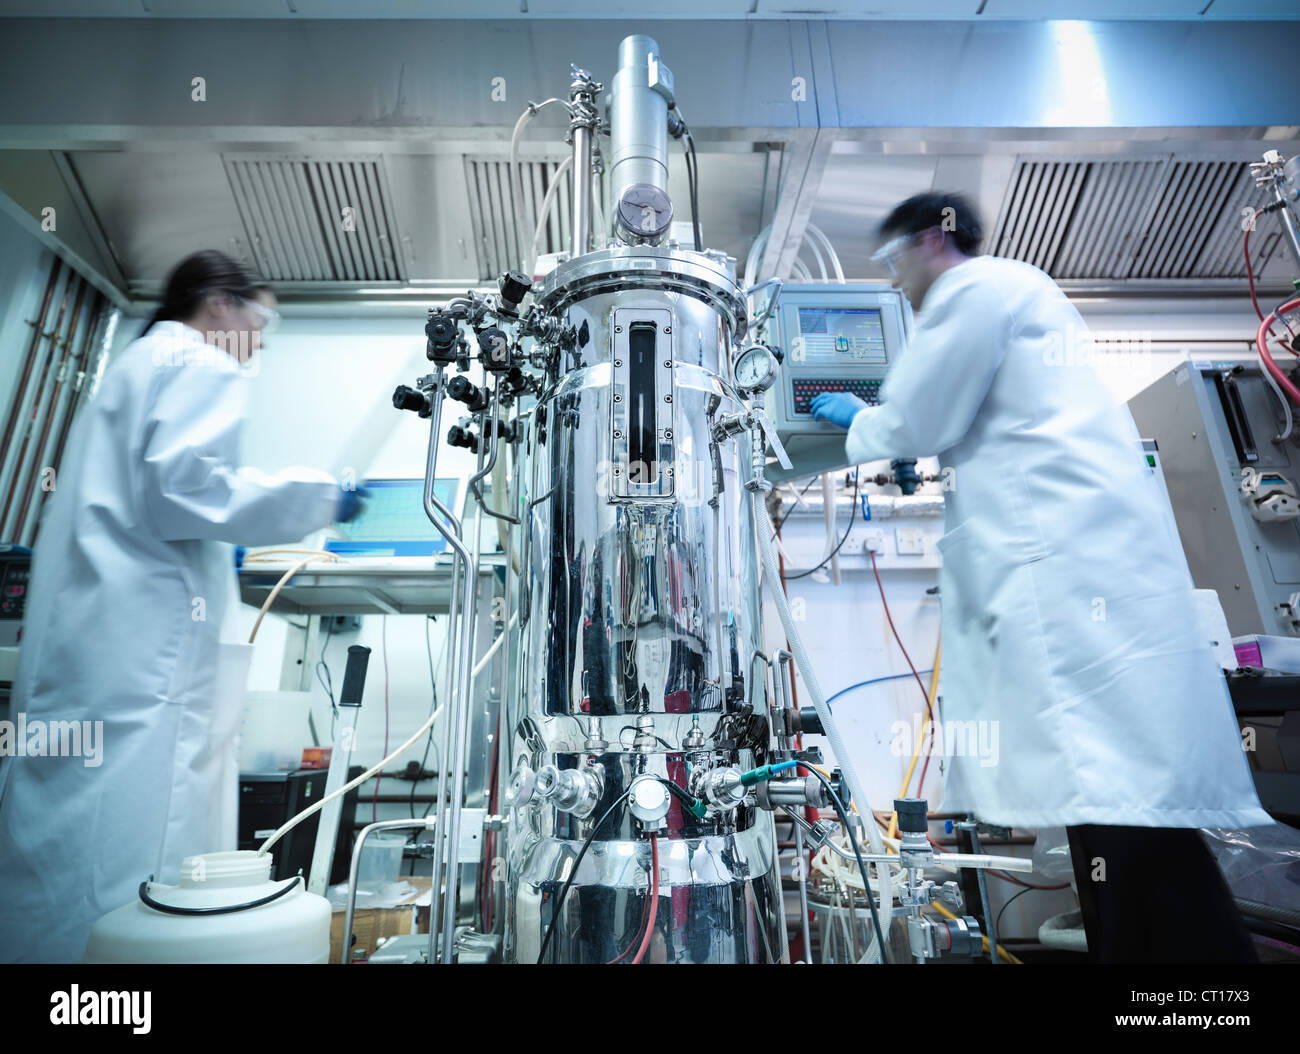 Scientists working with equipment in lab - Stock Image